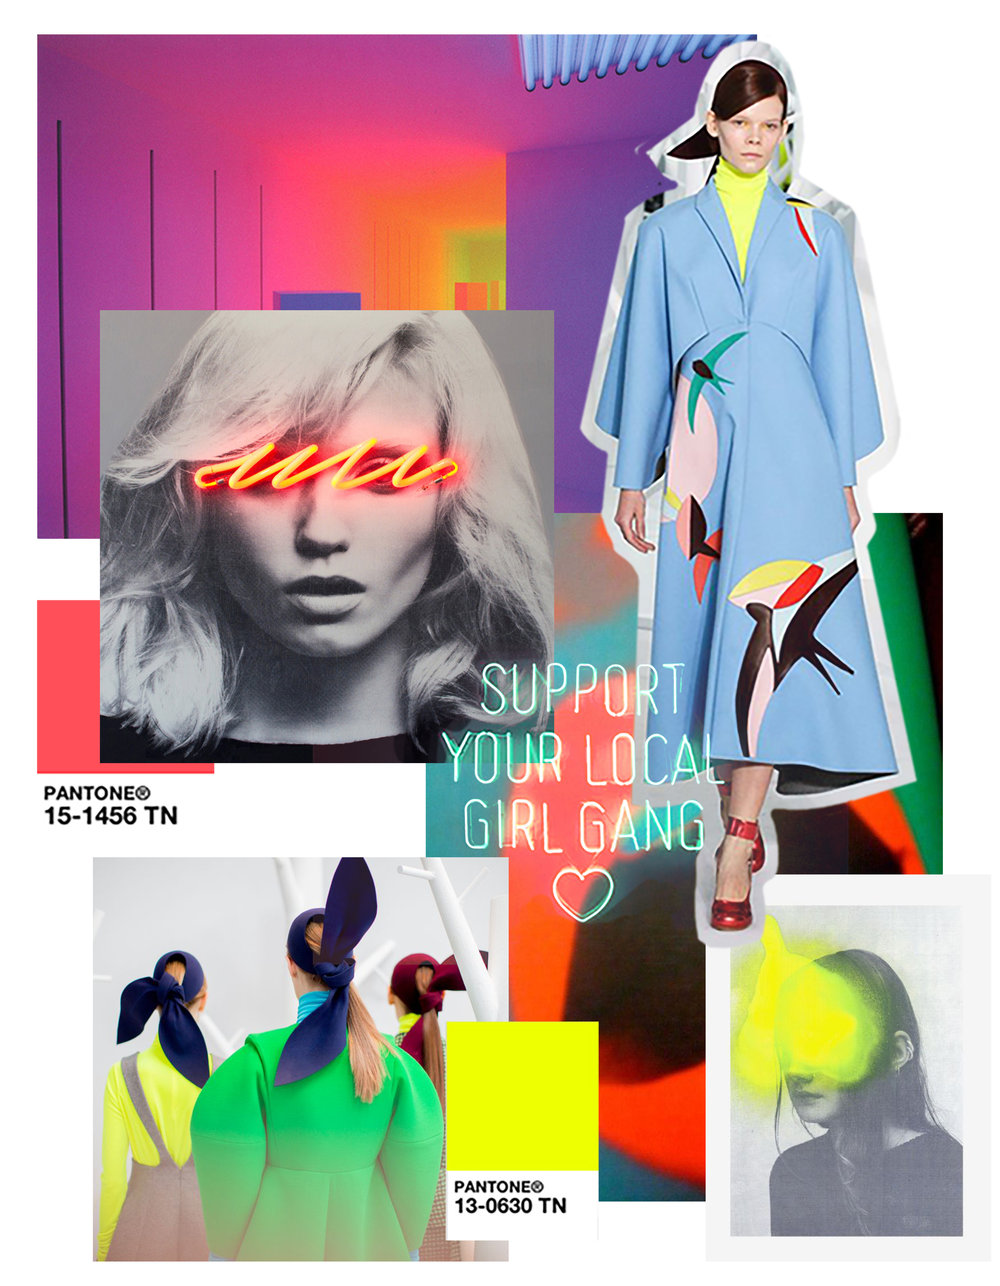 Neon room - Carlos Cruz-Diez    Text - Nick Thomm    Fashion - Delpozo Fall 15    Portrait - Javier Martin    Banner photo - Javier Martin